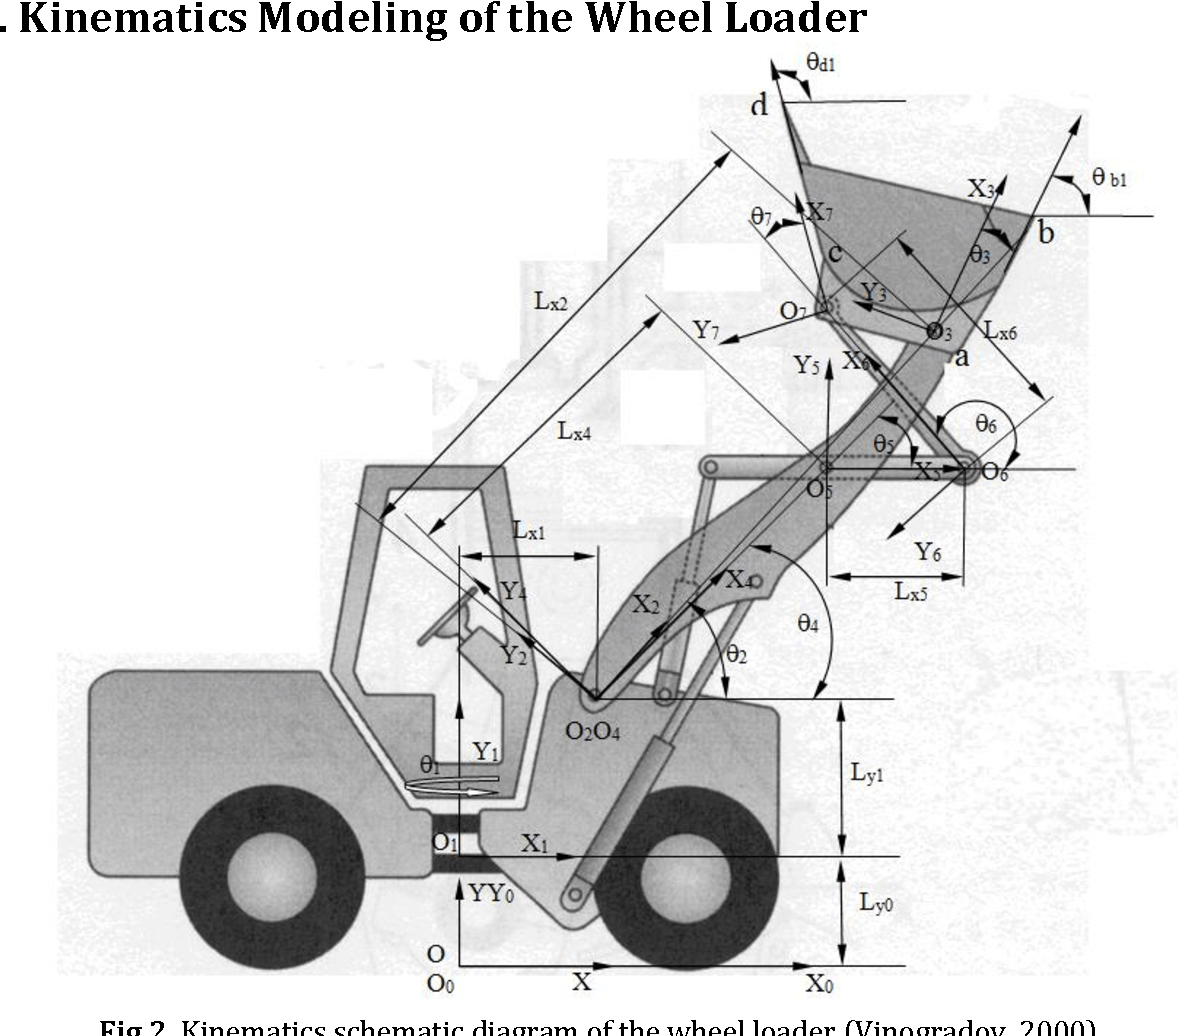 hight resolution of kinematics schematic diagram of the wheel loader vinogradov 2000